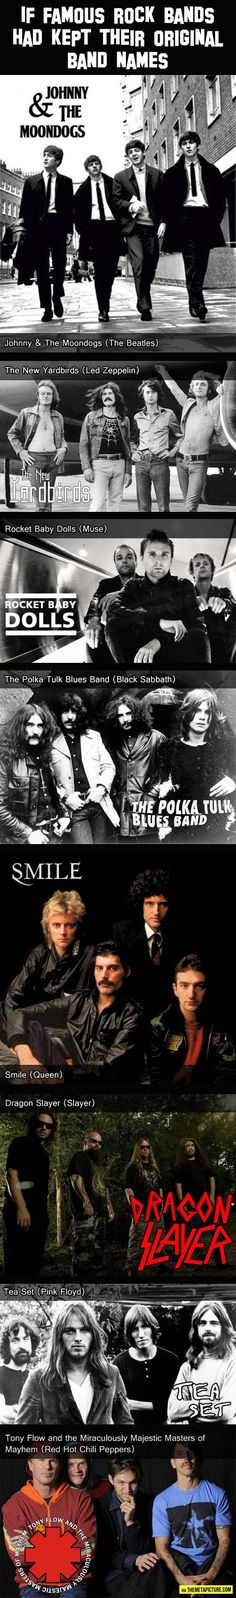 I know this is more of a music nerd thing...but Black Sabbath was going to be The Polka Tulk Blues Band!!? :/  But I like the name Johnny & the Moondogs. That's kinda neat